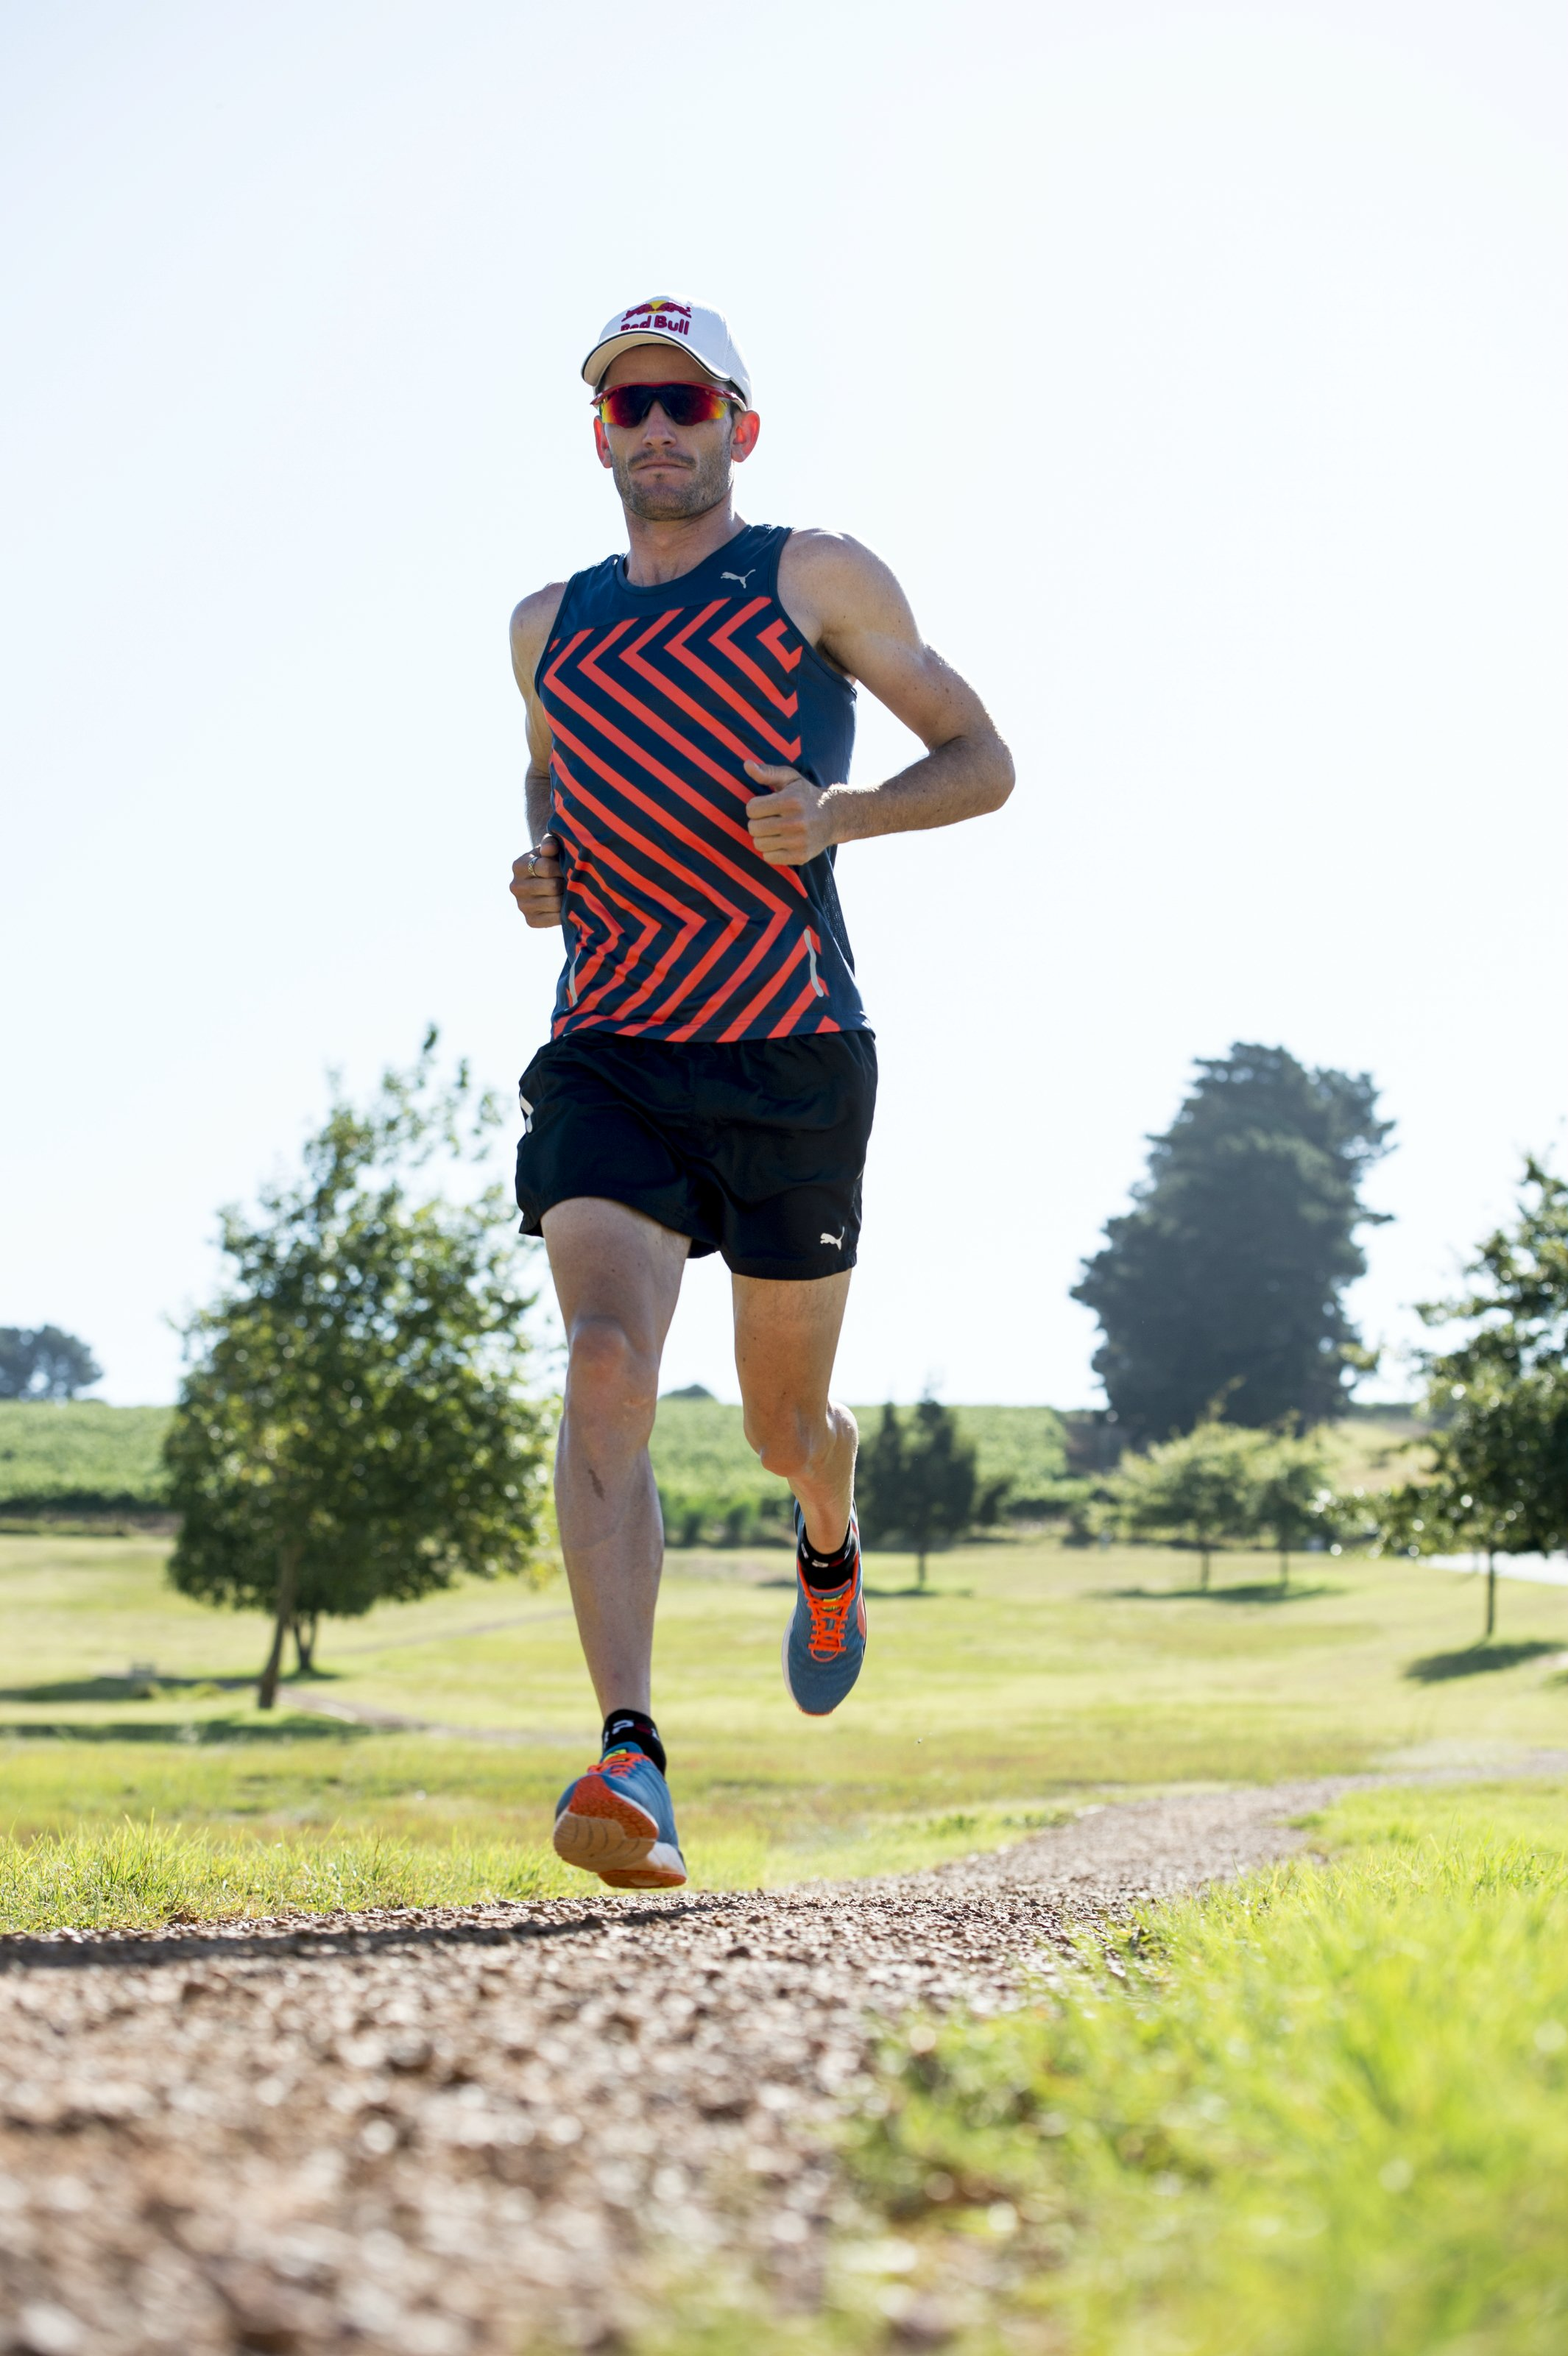 South African Olympic Triathlete, Richard Murray is looking forward to lining up with some of the world's best road runners at the inaugural FNB Cape Town 12 ONERUN on Sunday, 17 May 2015.  PHOTO CREDIT:  Craig Kolesky Red Bull Content Pool Nikon